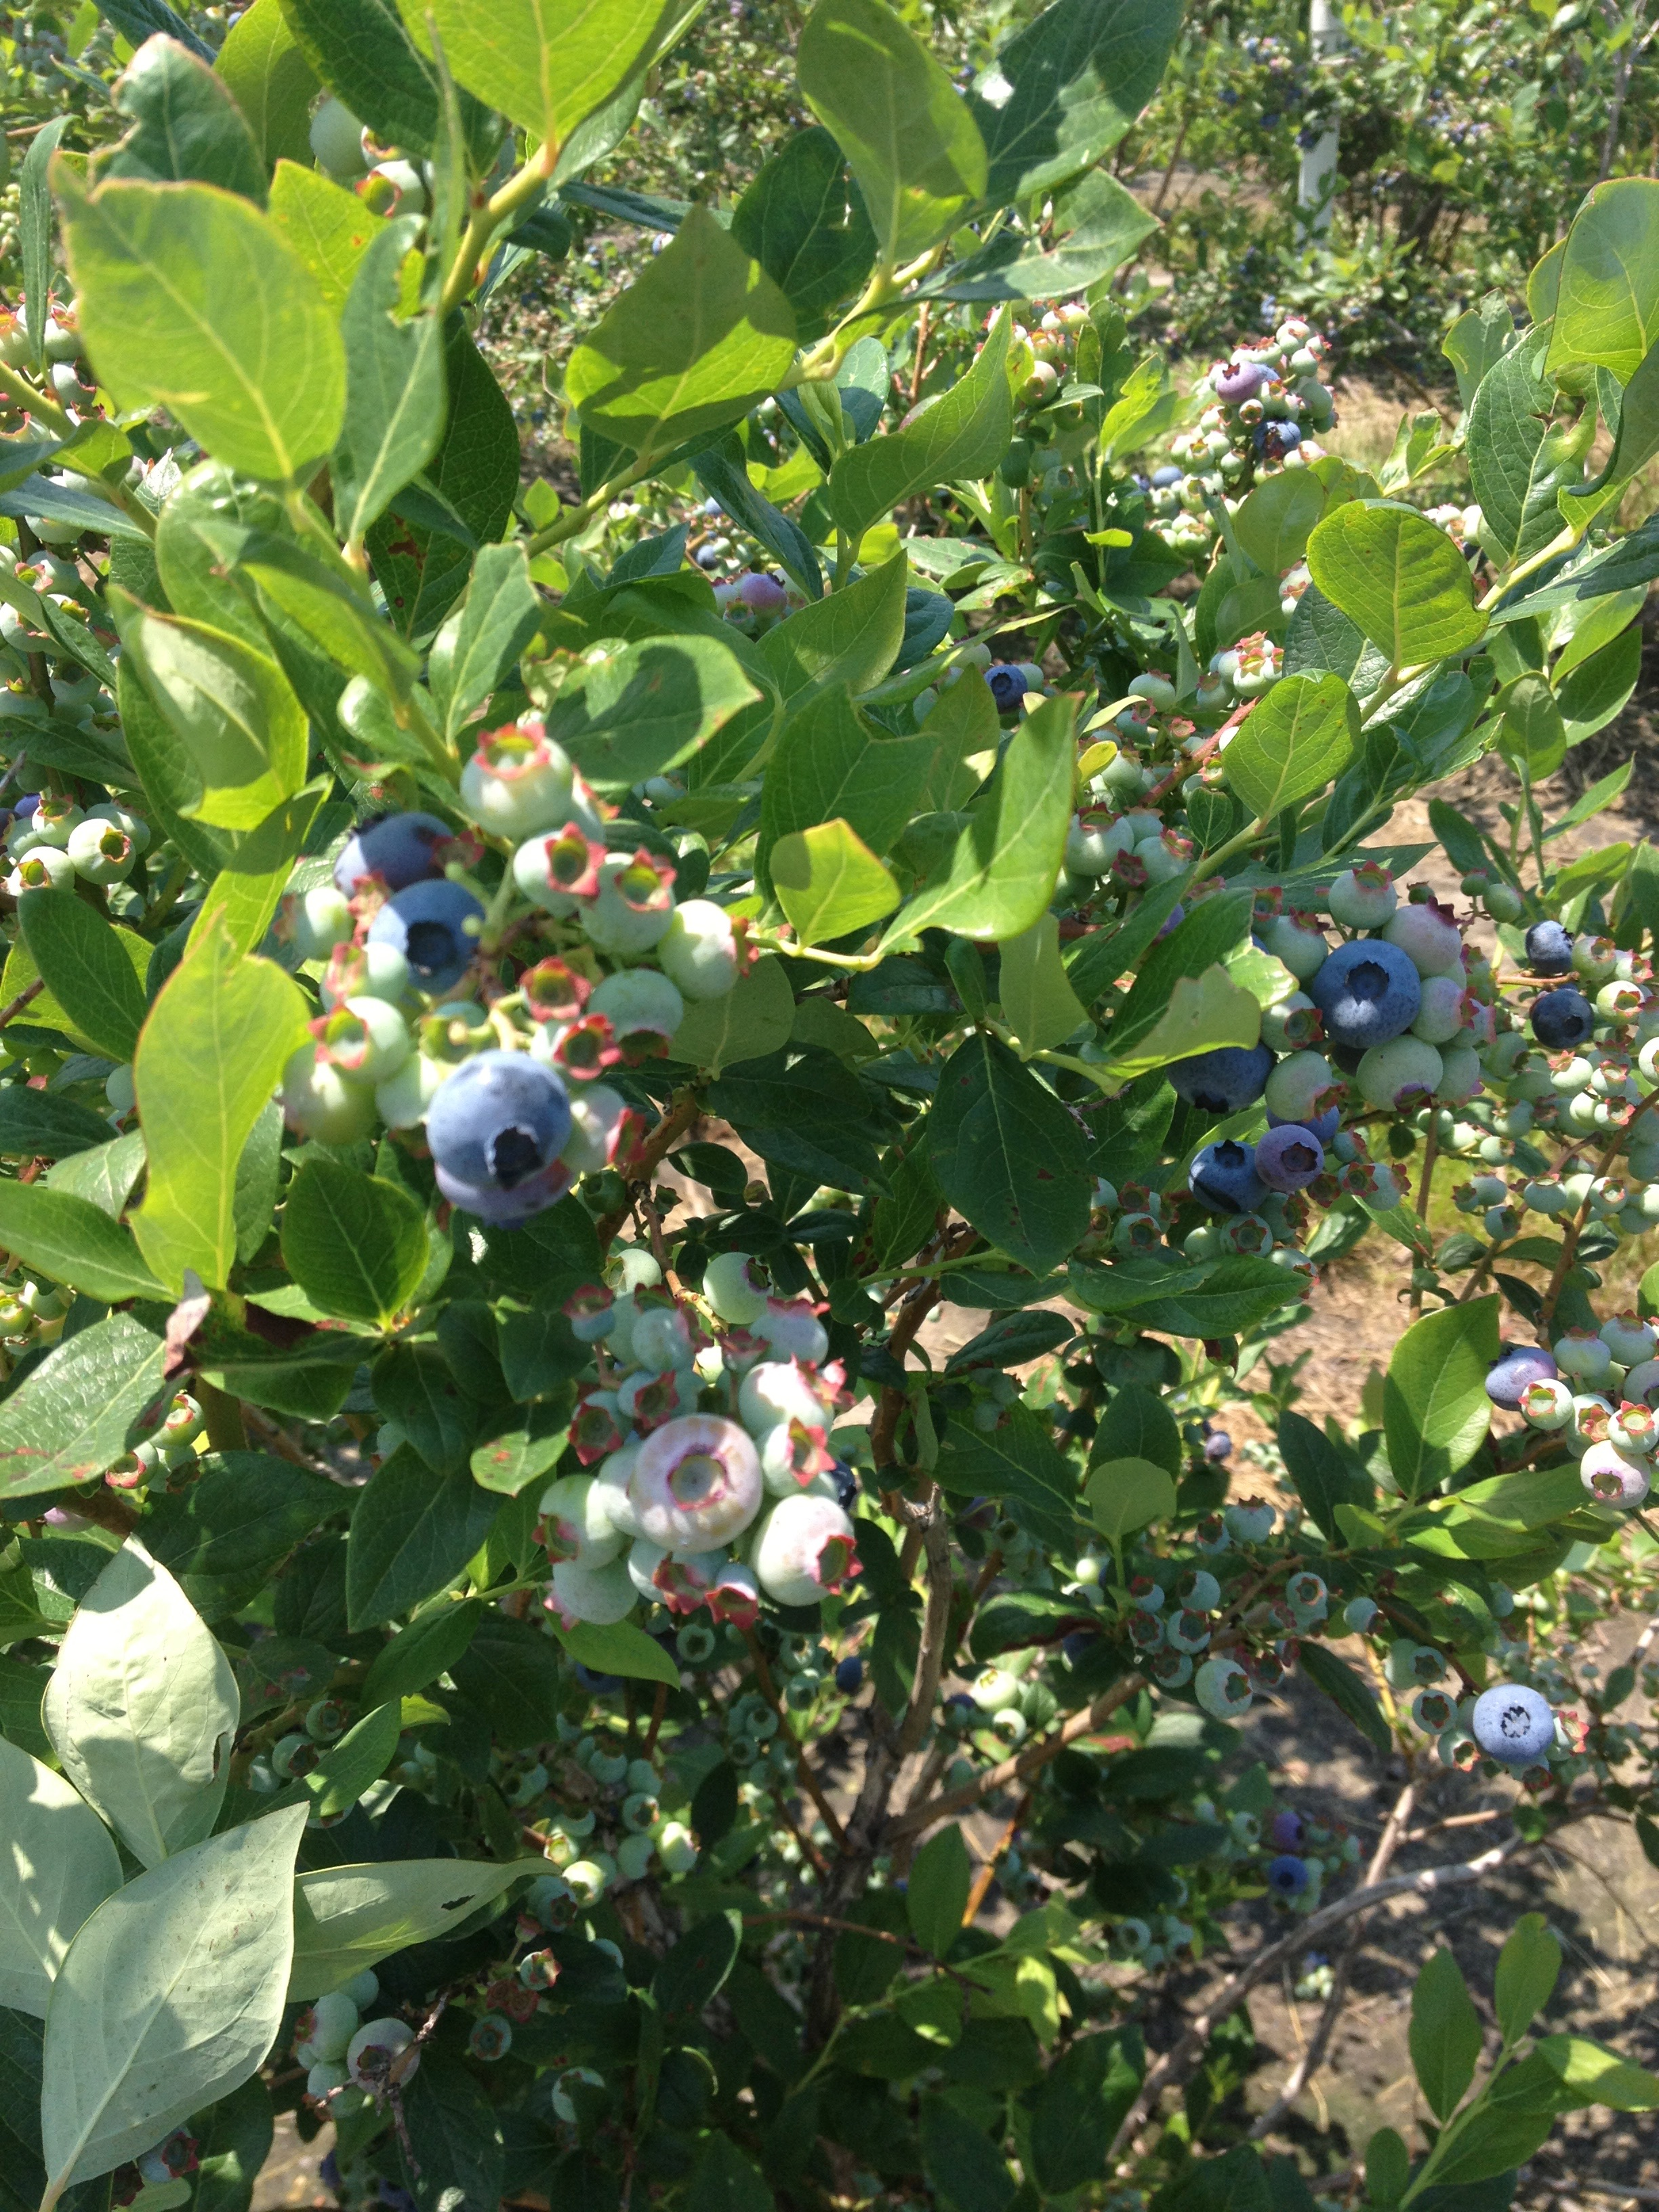 The yeast were from these blueberries John and our illustrator, Nikki, harvested in 2013